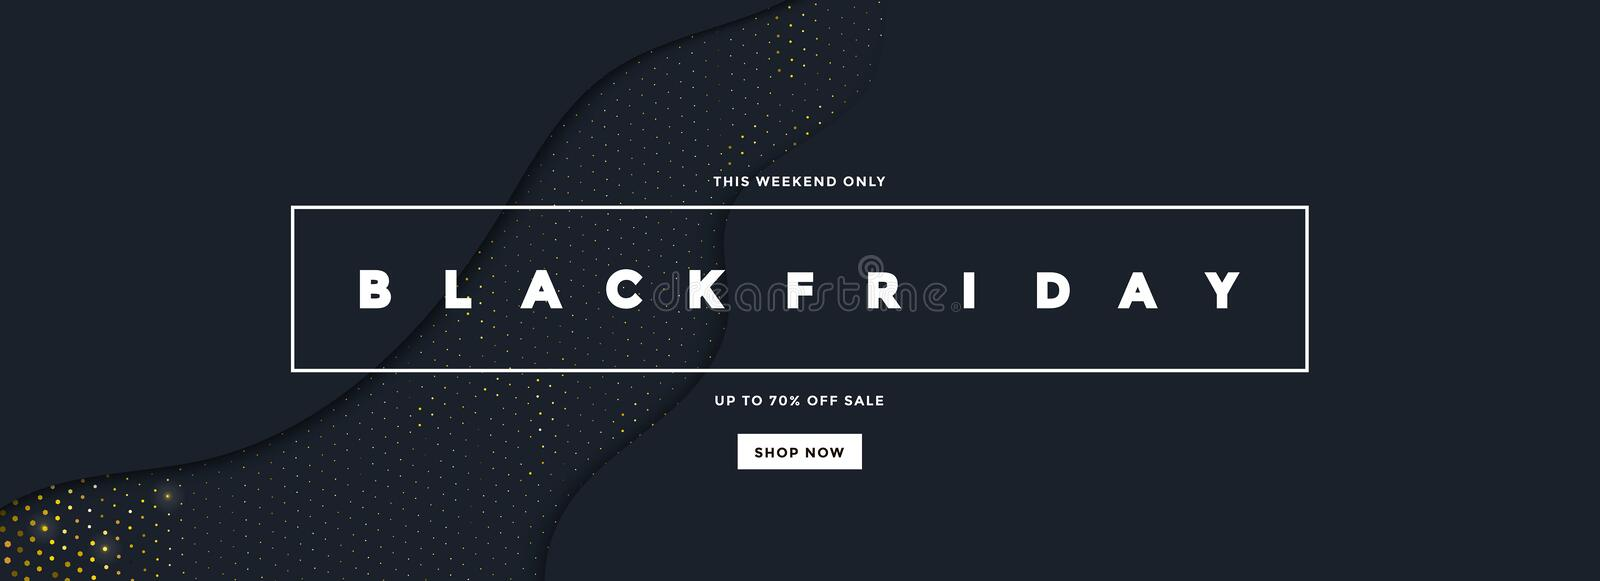 Black Friday Sale Banner 6. Black Friday sale poster or commercial discount event banner on black background with Halftone pattern. Social media template for vector illustration